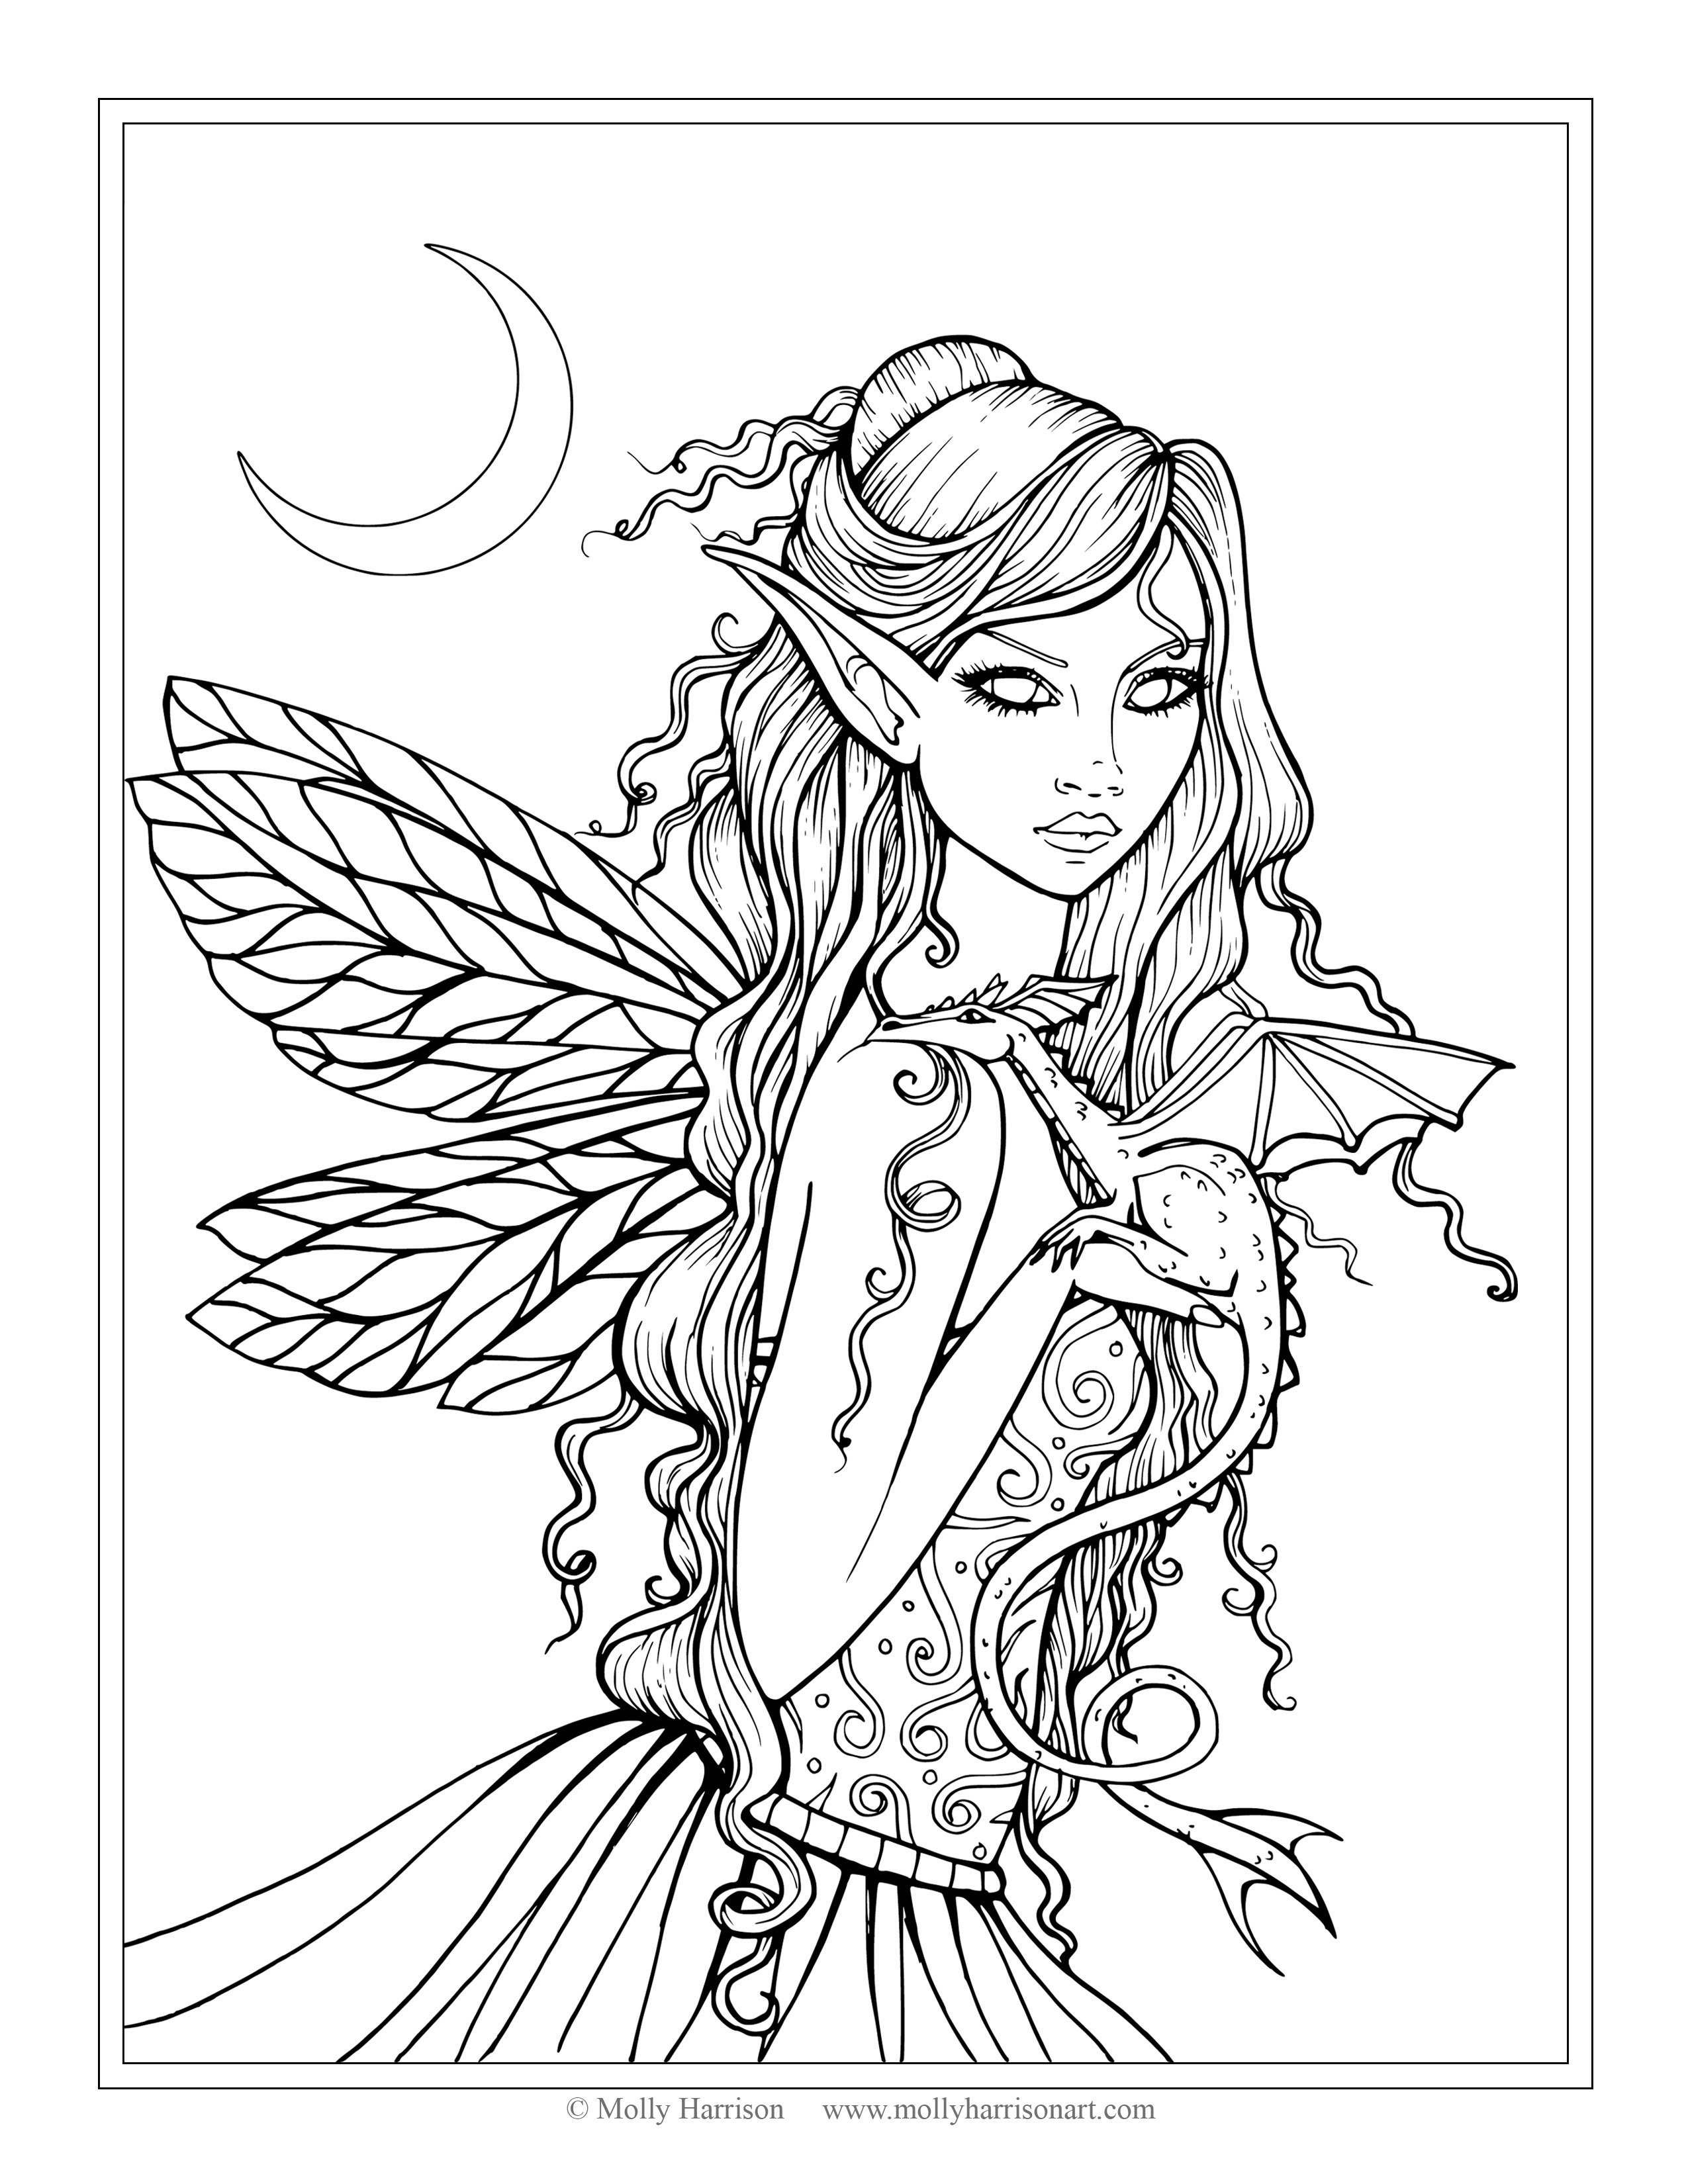 fairy and dragon coloring pages 251 best images about fantasy dragons fairy coloring for and pages coloring dragon fairy